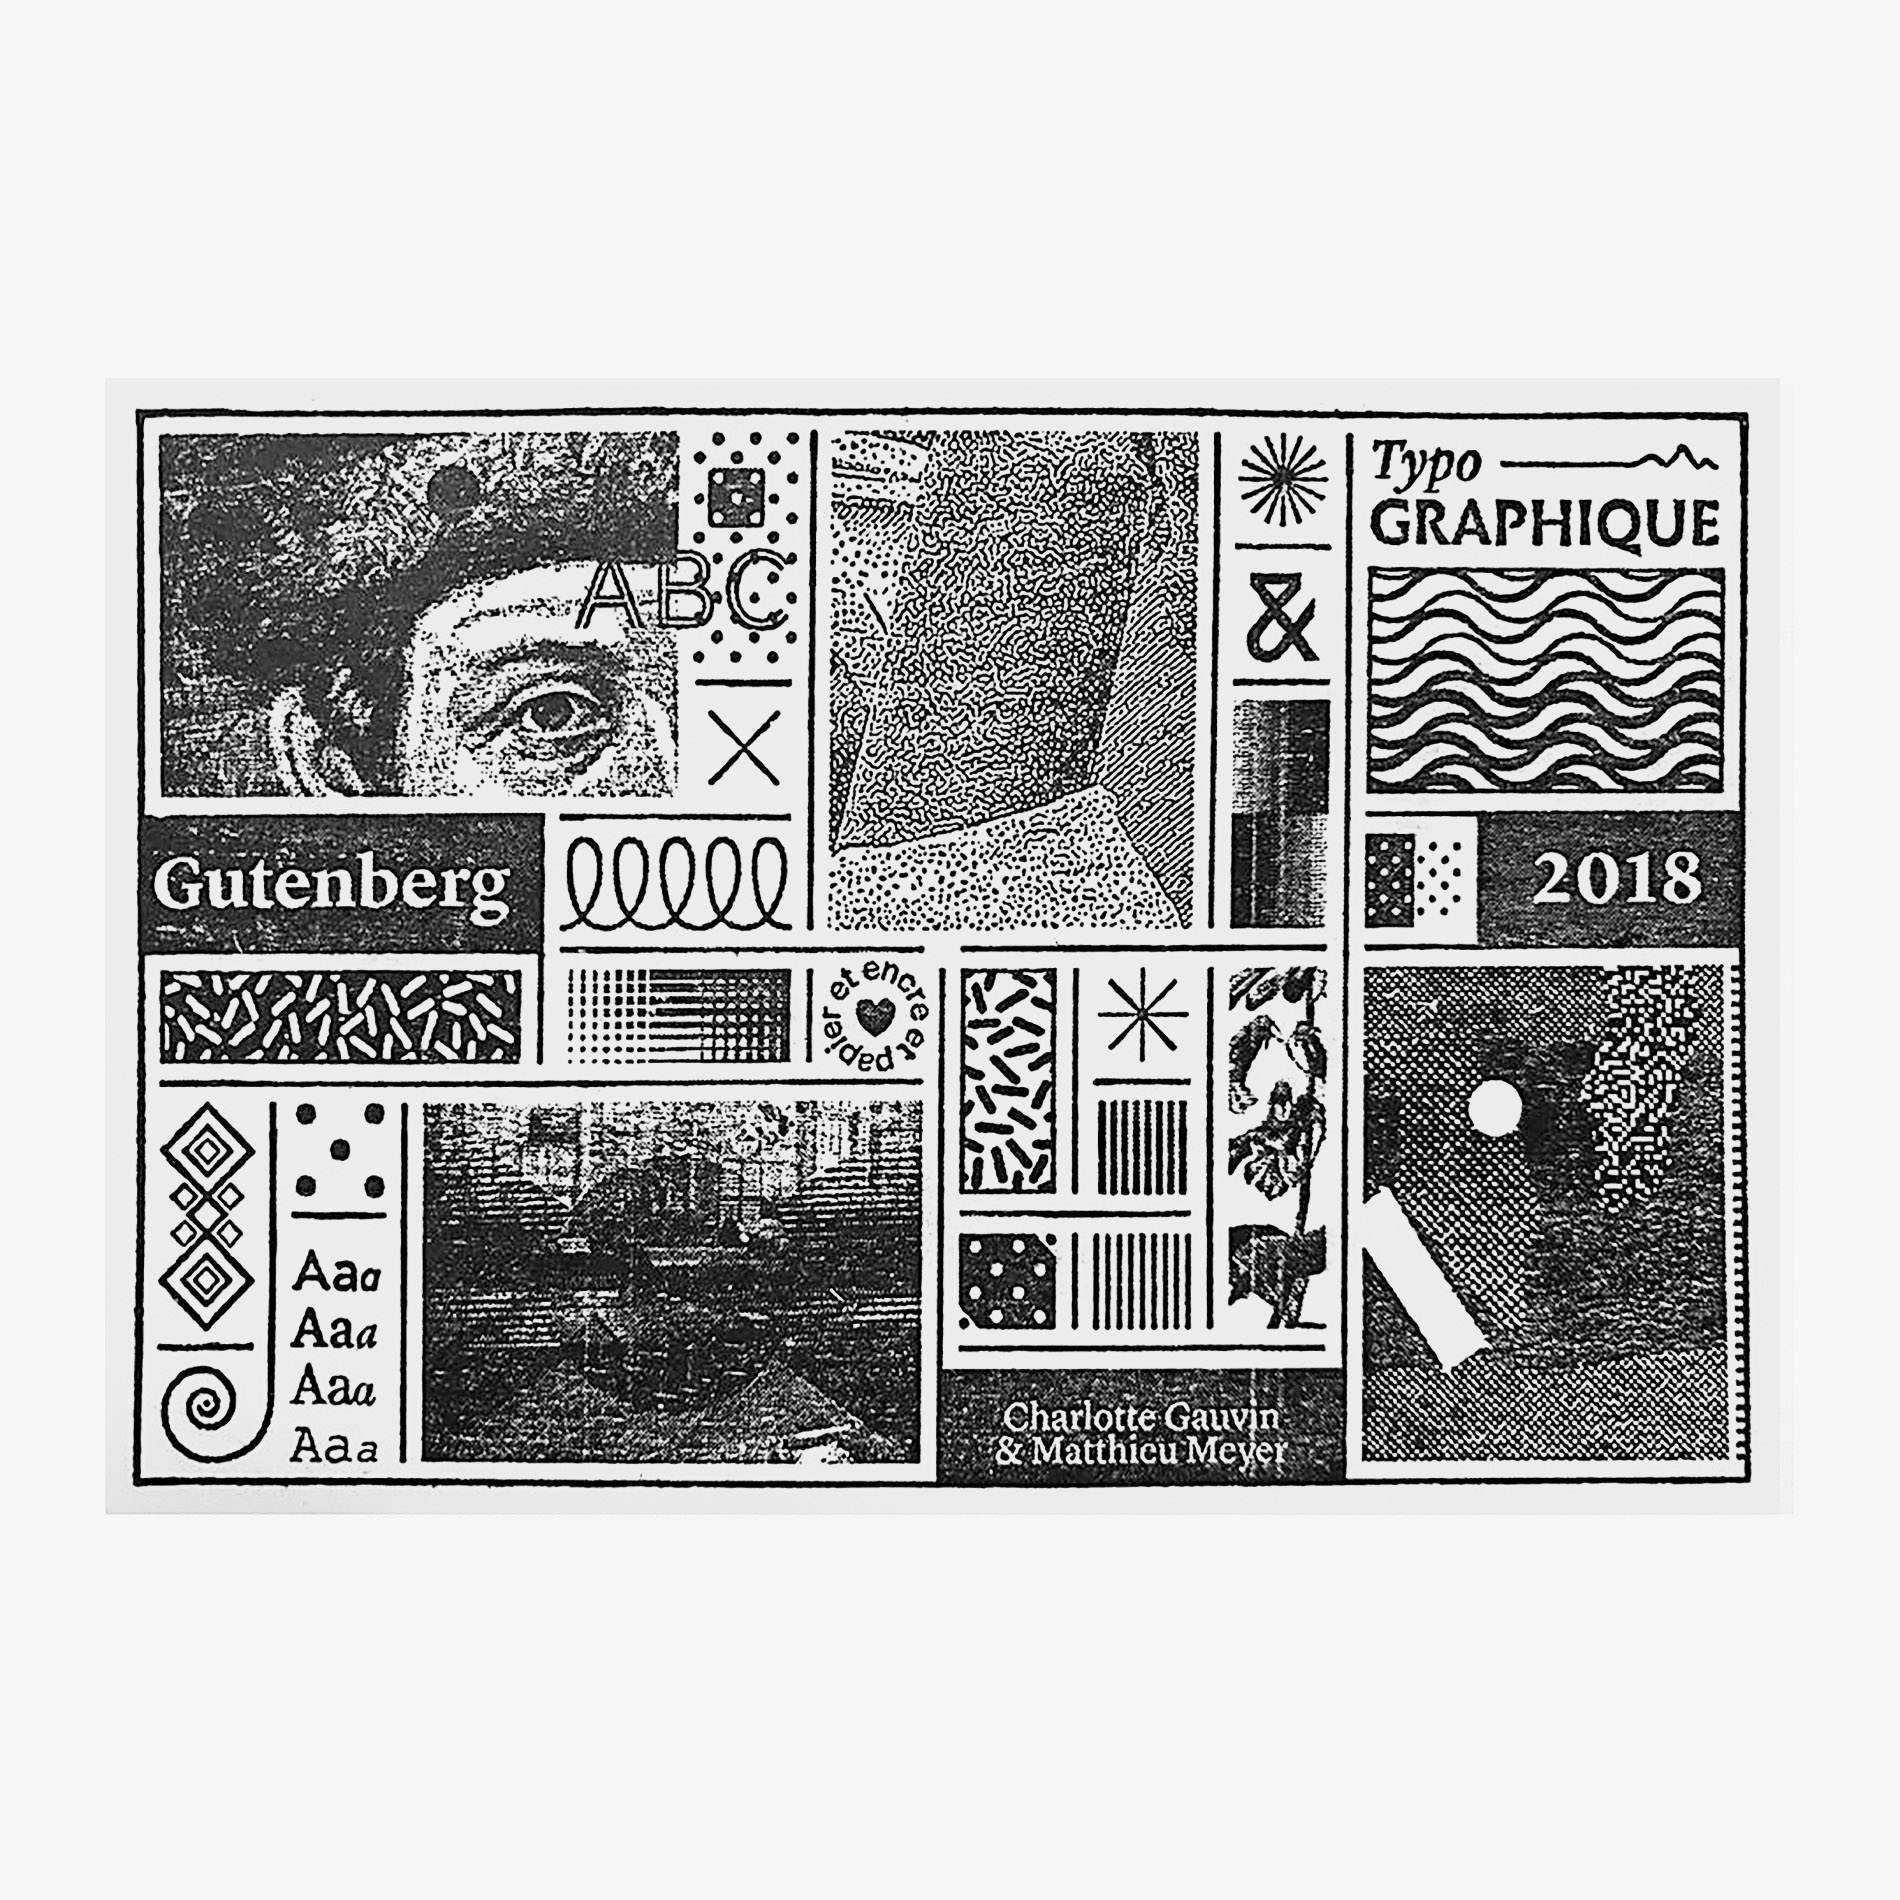 Composition Gutenberg 2018